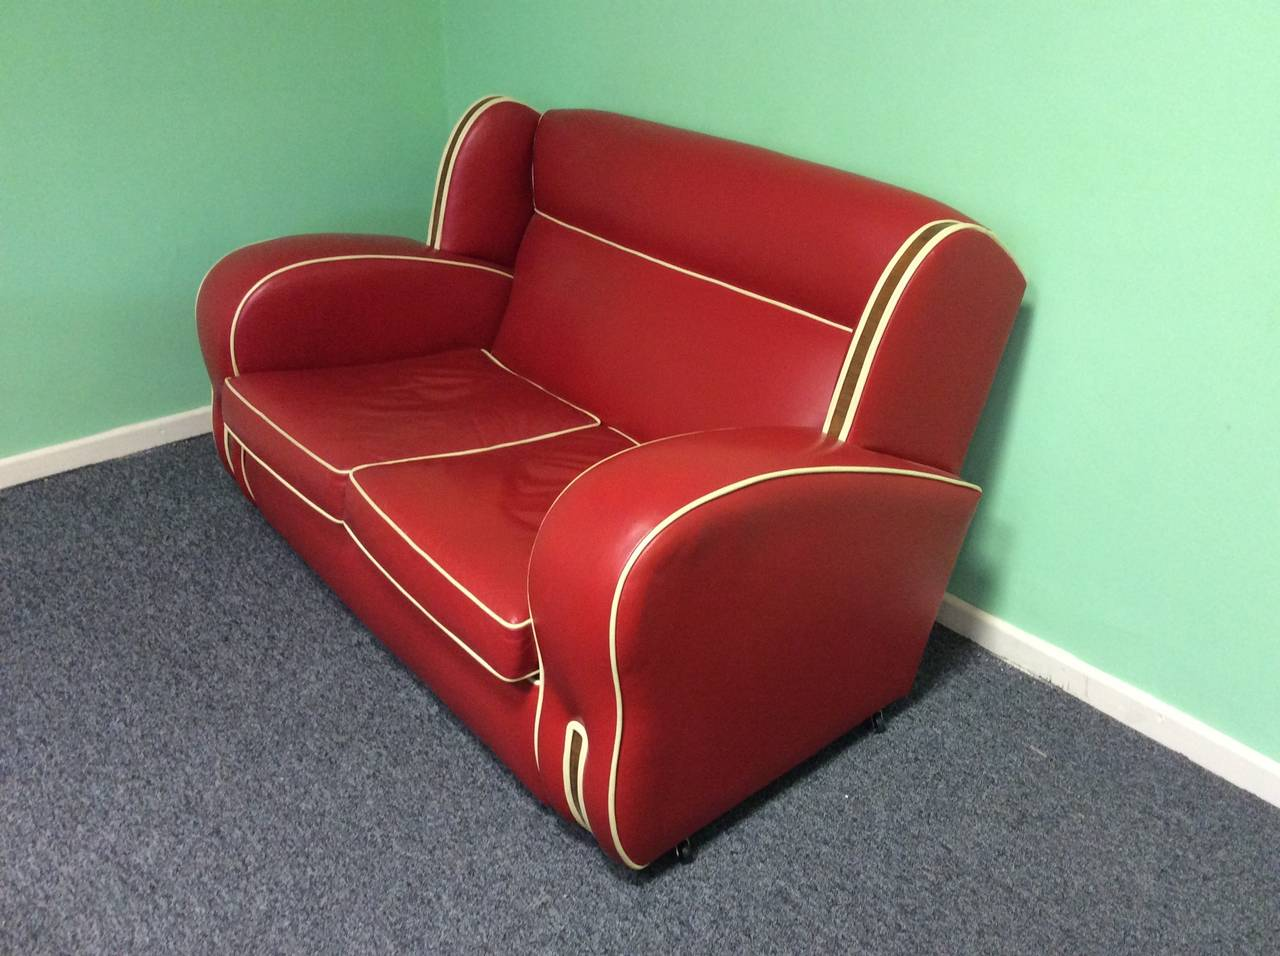 Art Deco Red Leather Sofa At 1stdibs